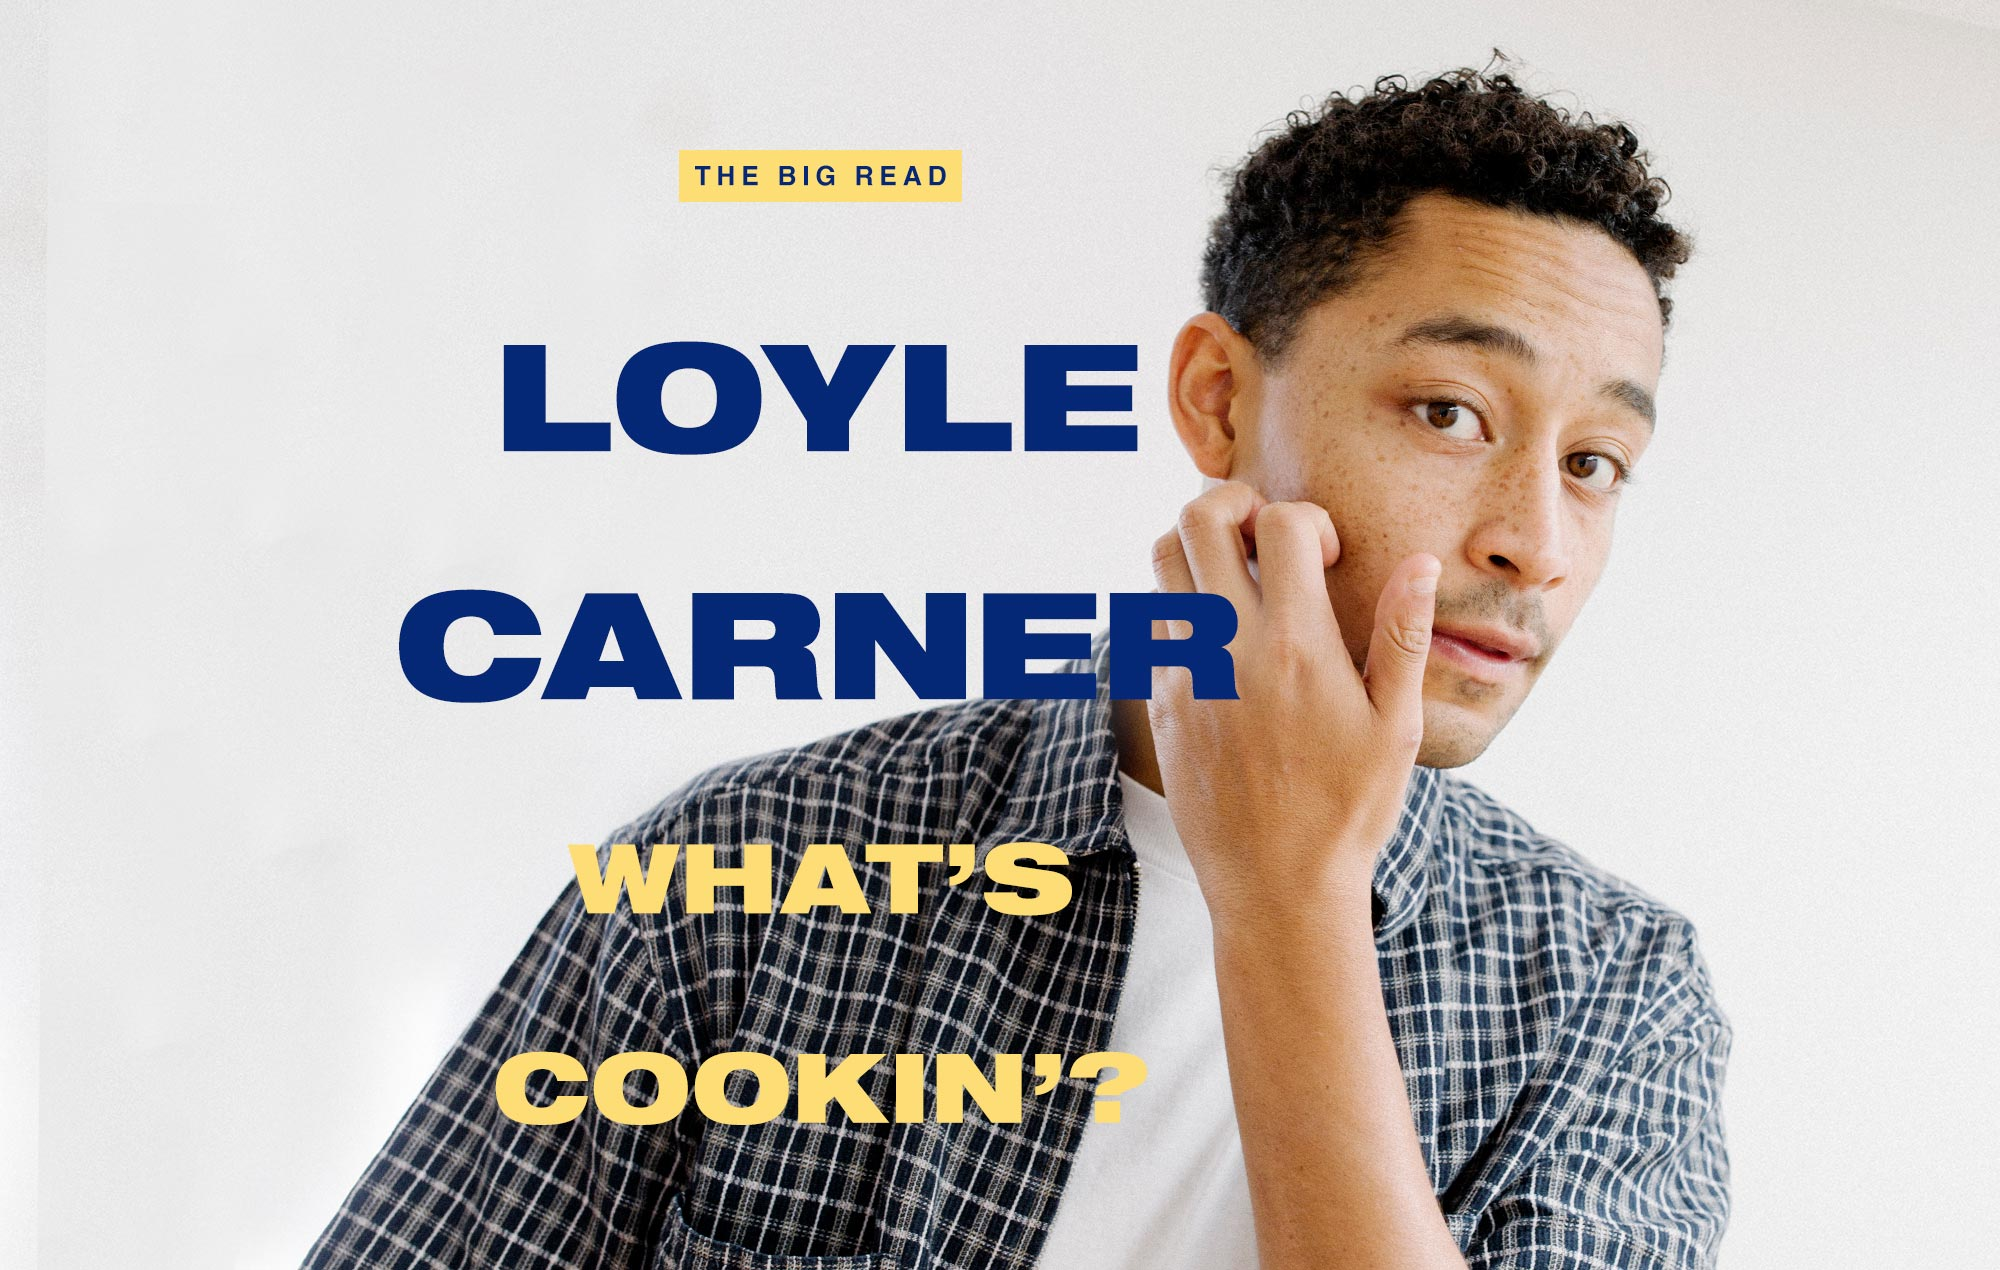 LOYLE CARNER NME Interview